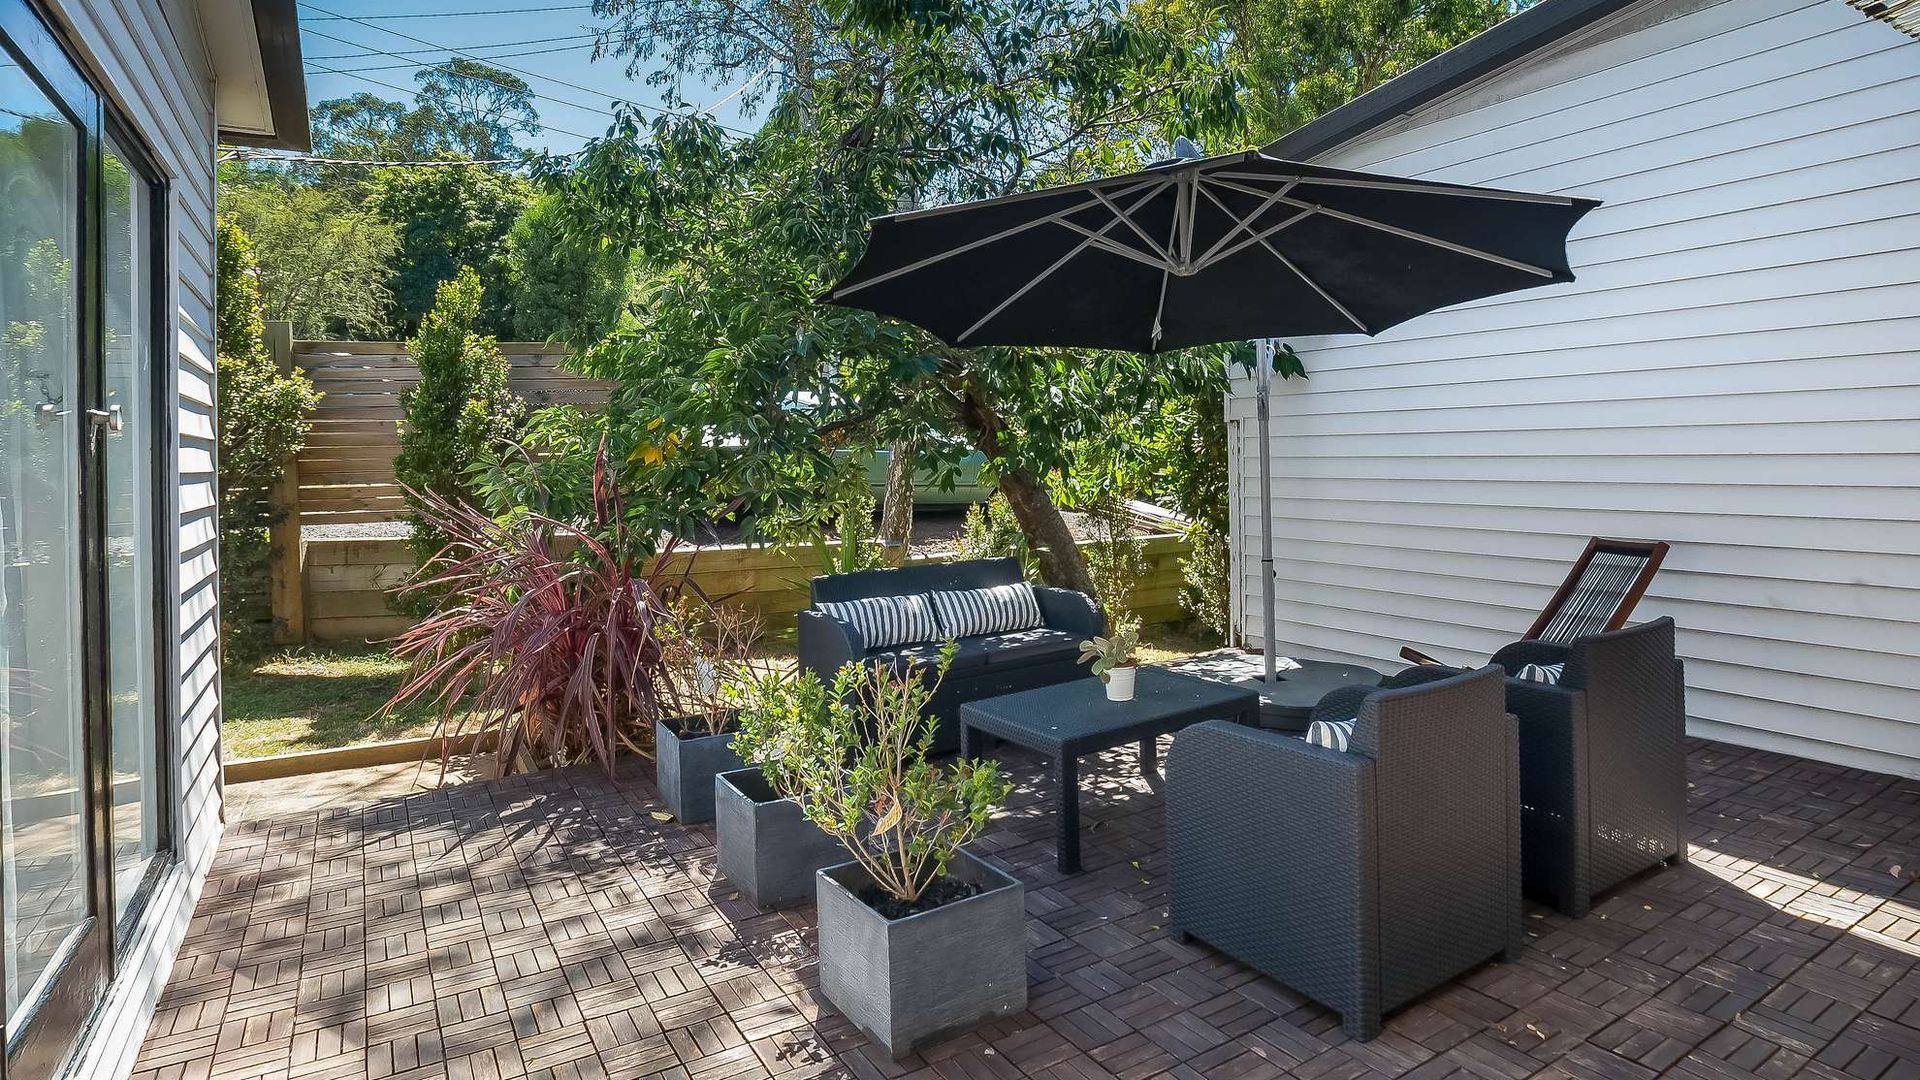 1598 Burwood Highway, Belgrave VIC 3160, Image 1